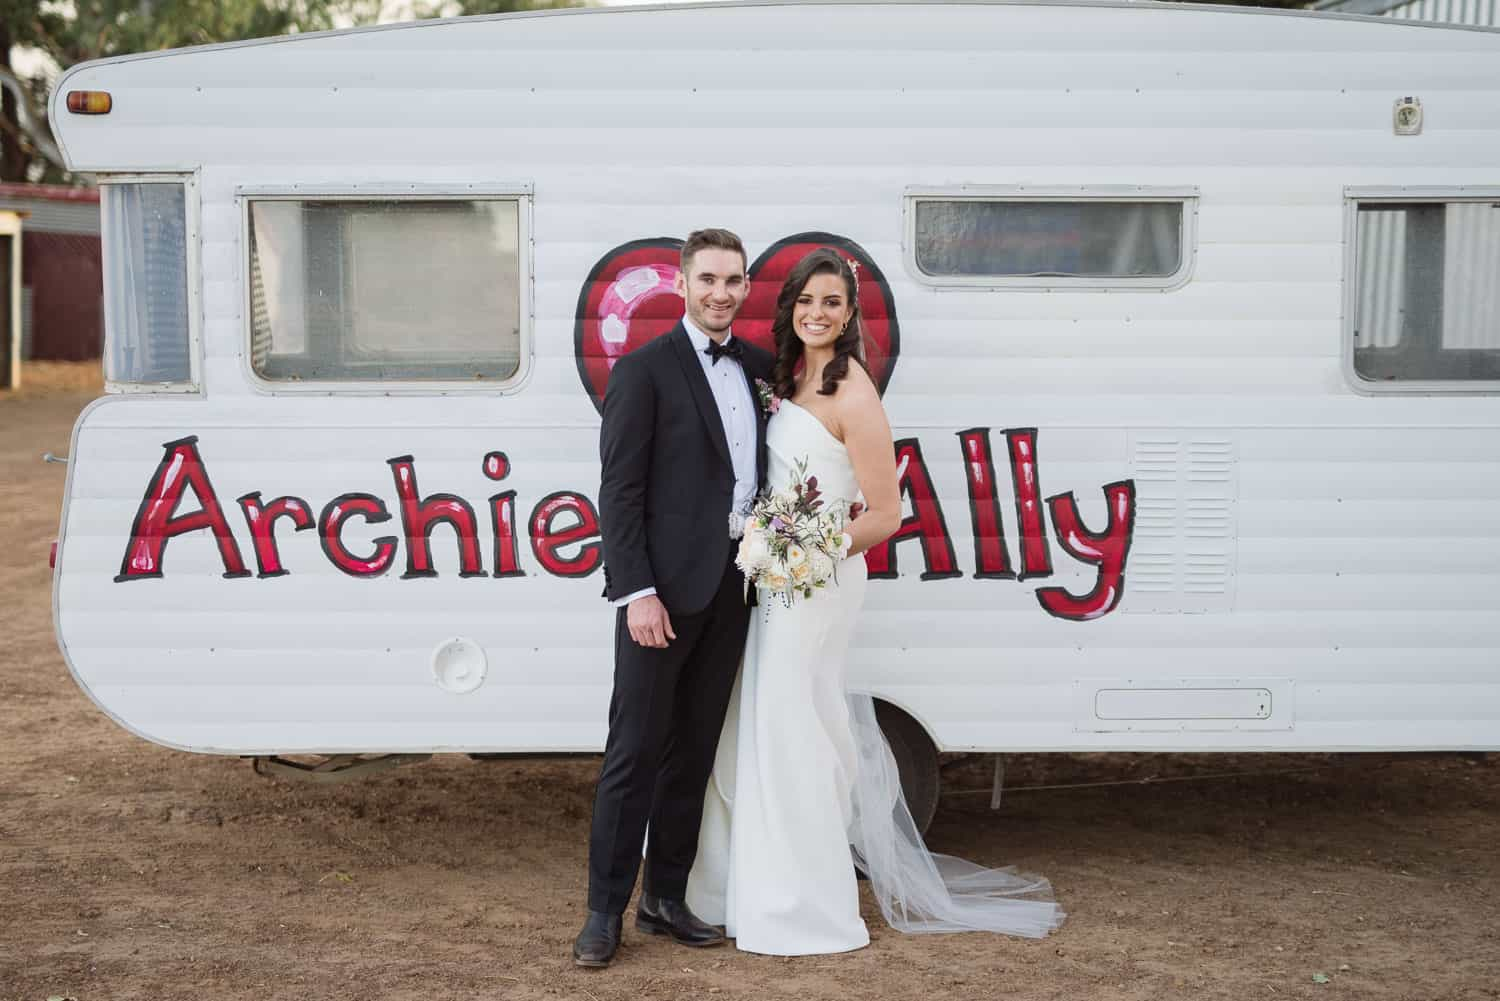 Archie and Ally in front of a custom painted caravan